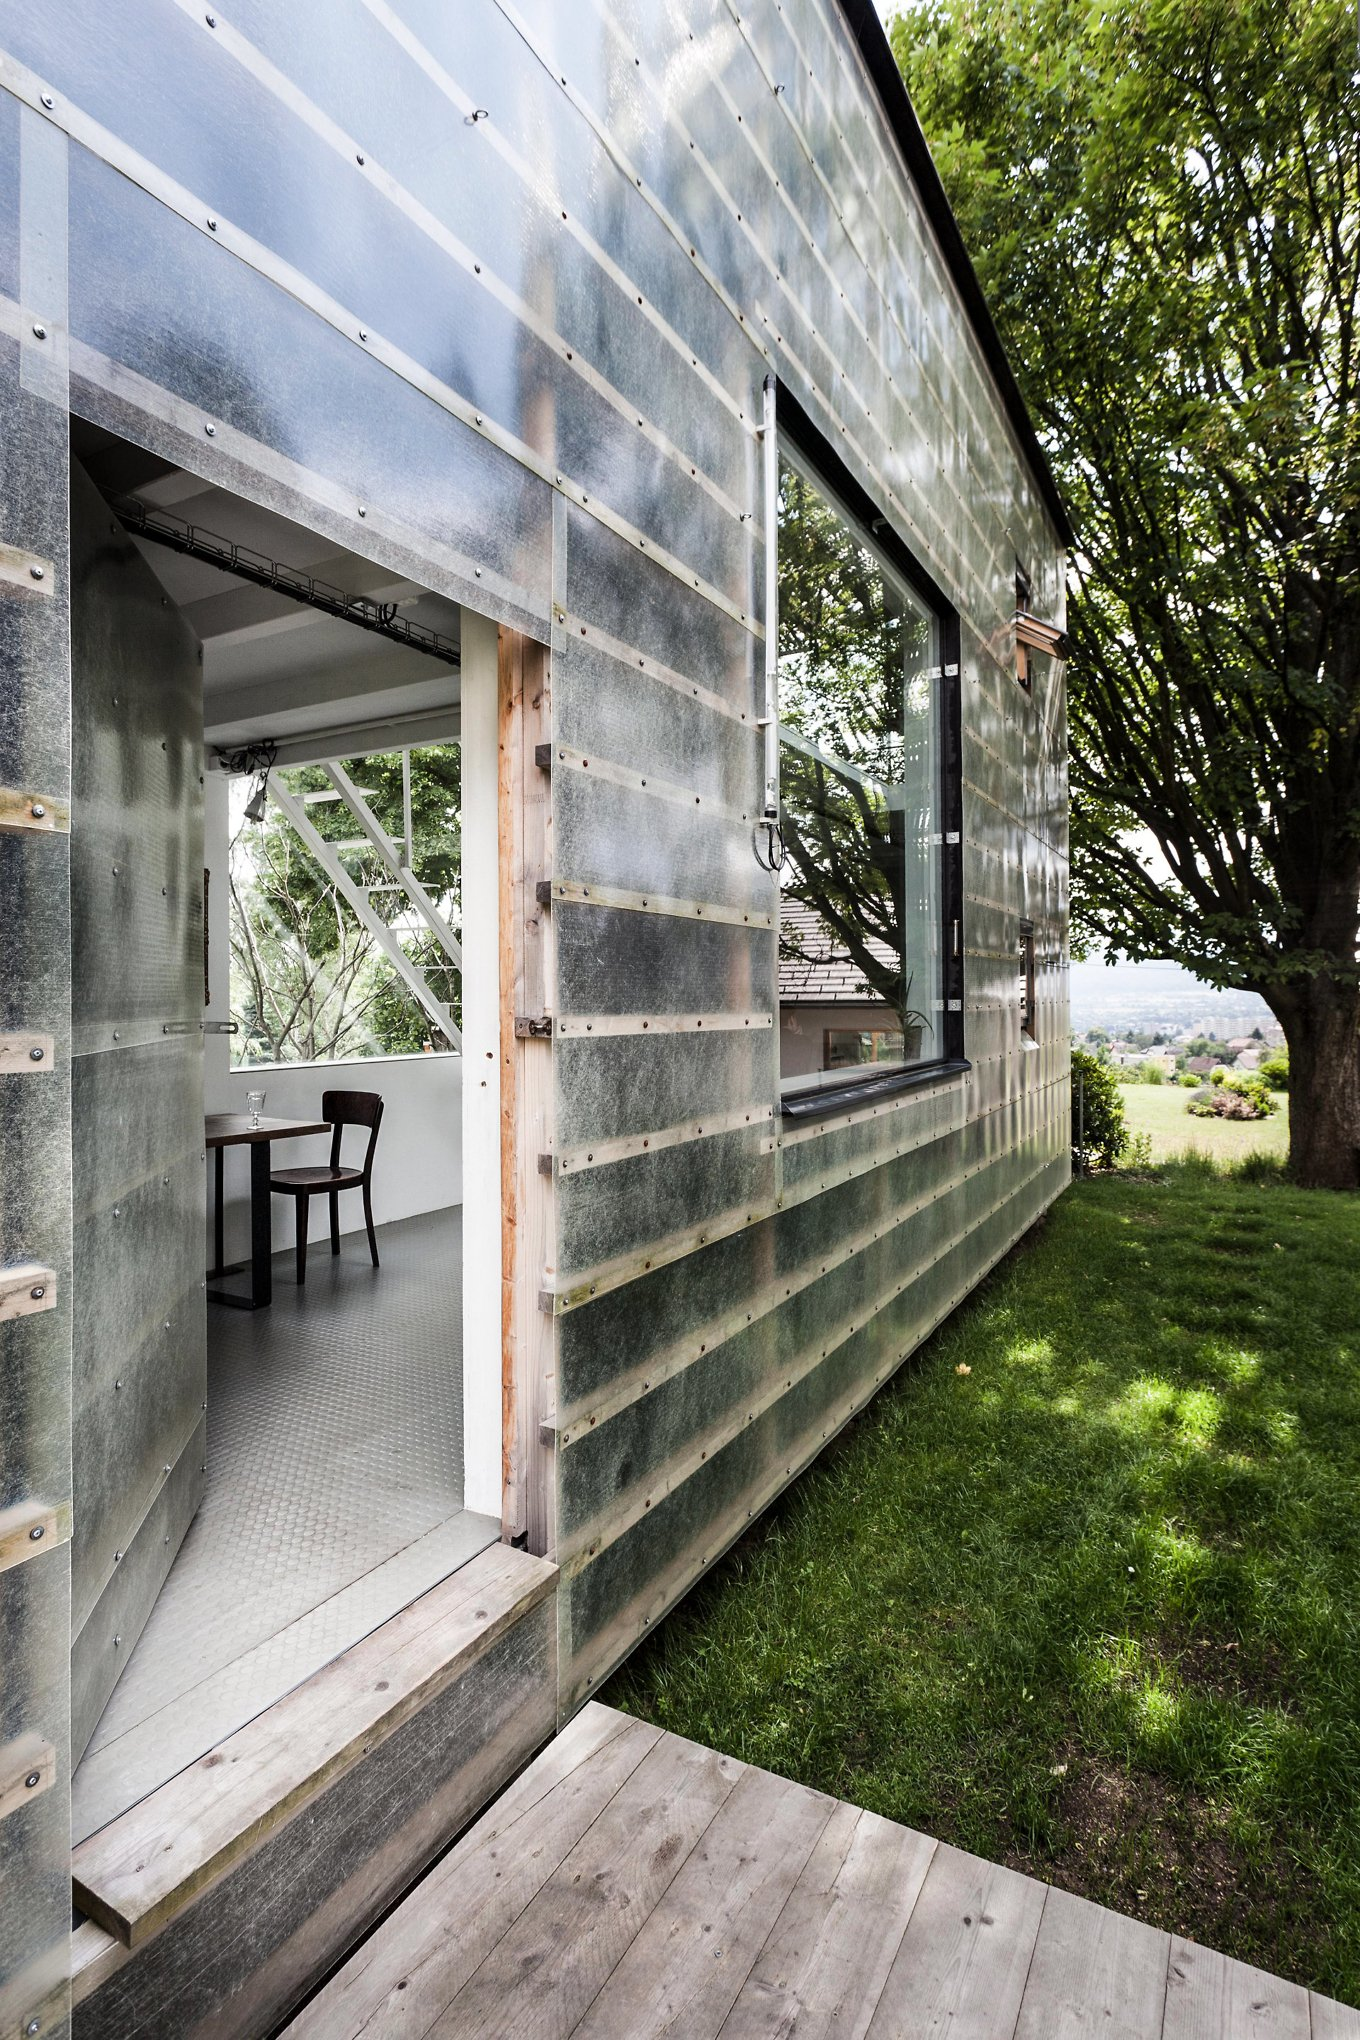 Modern and efficient, the Zen-Houses offer an inspiring glimpse at and  reveal the potential of cost-efficient housing of the present and near  future.